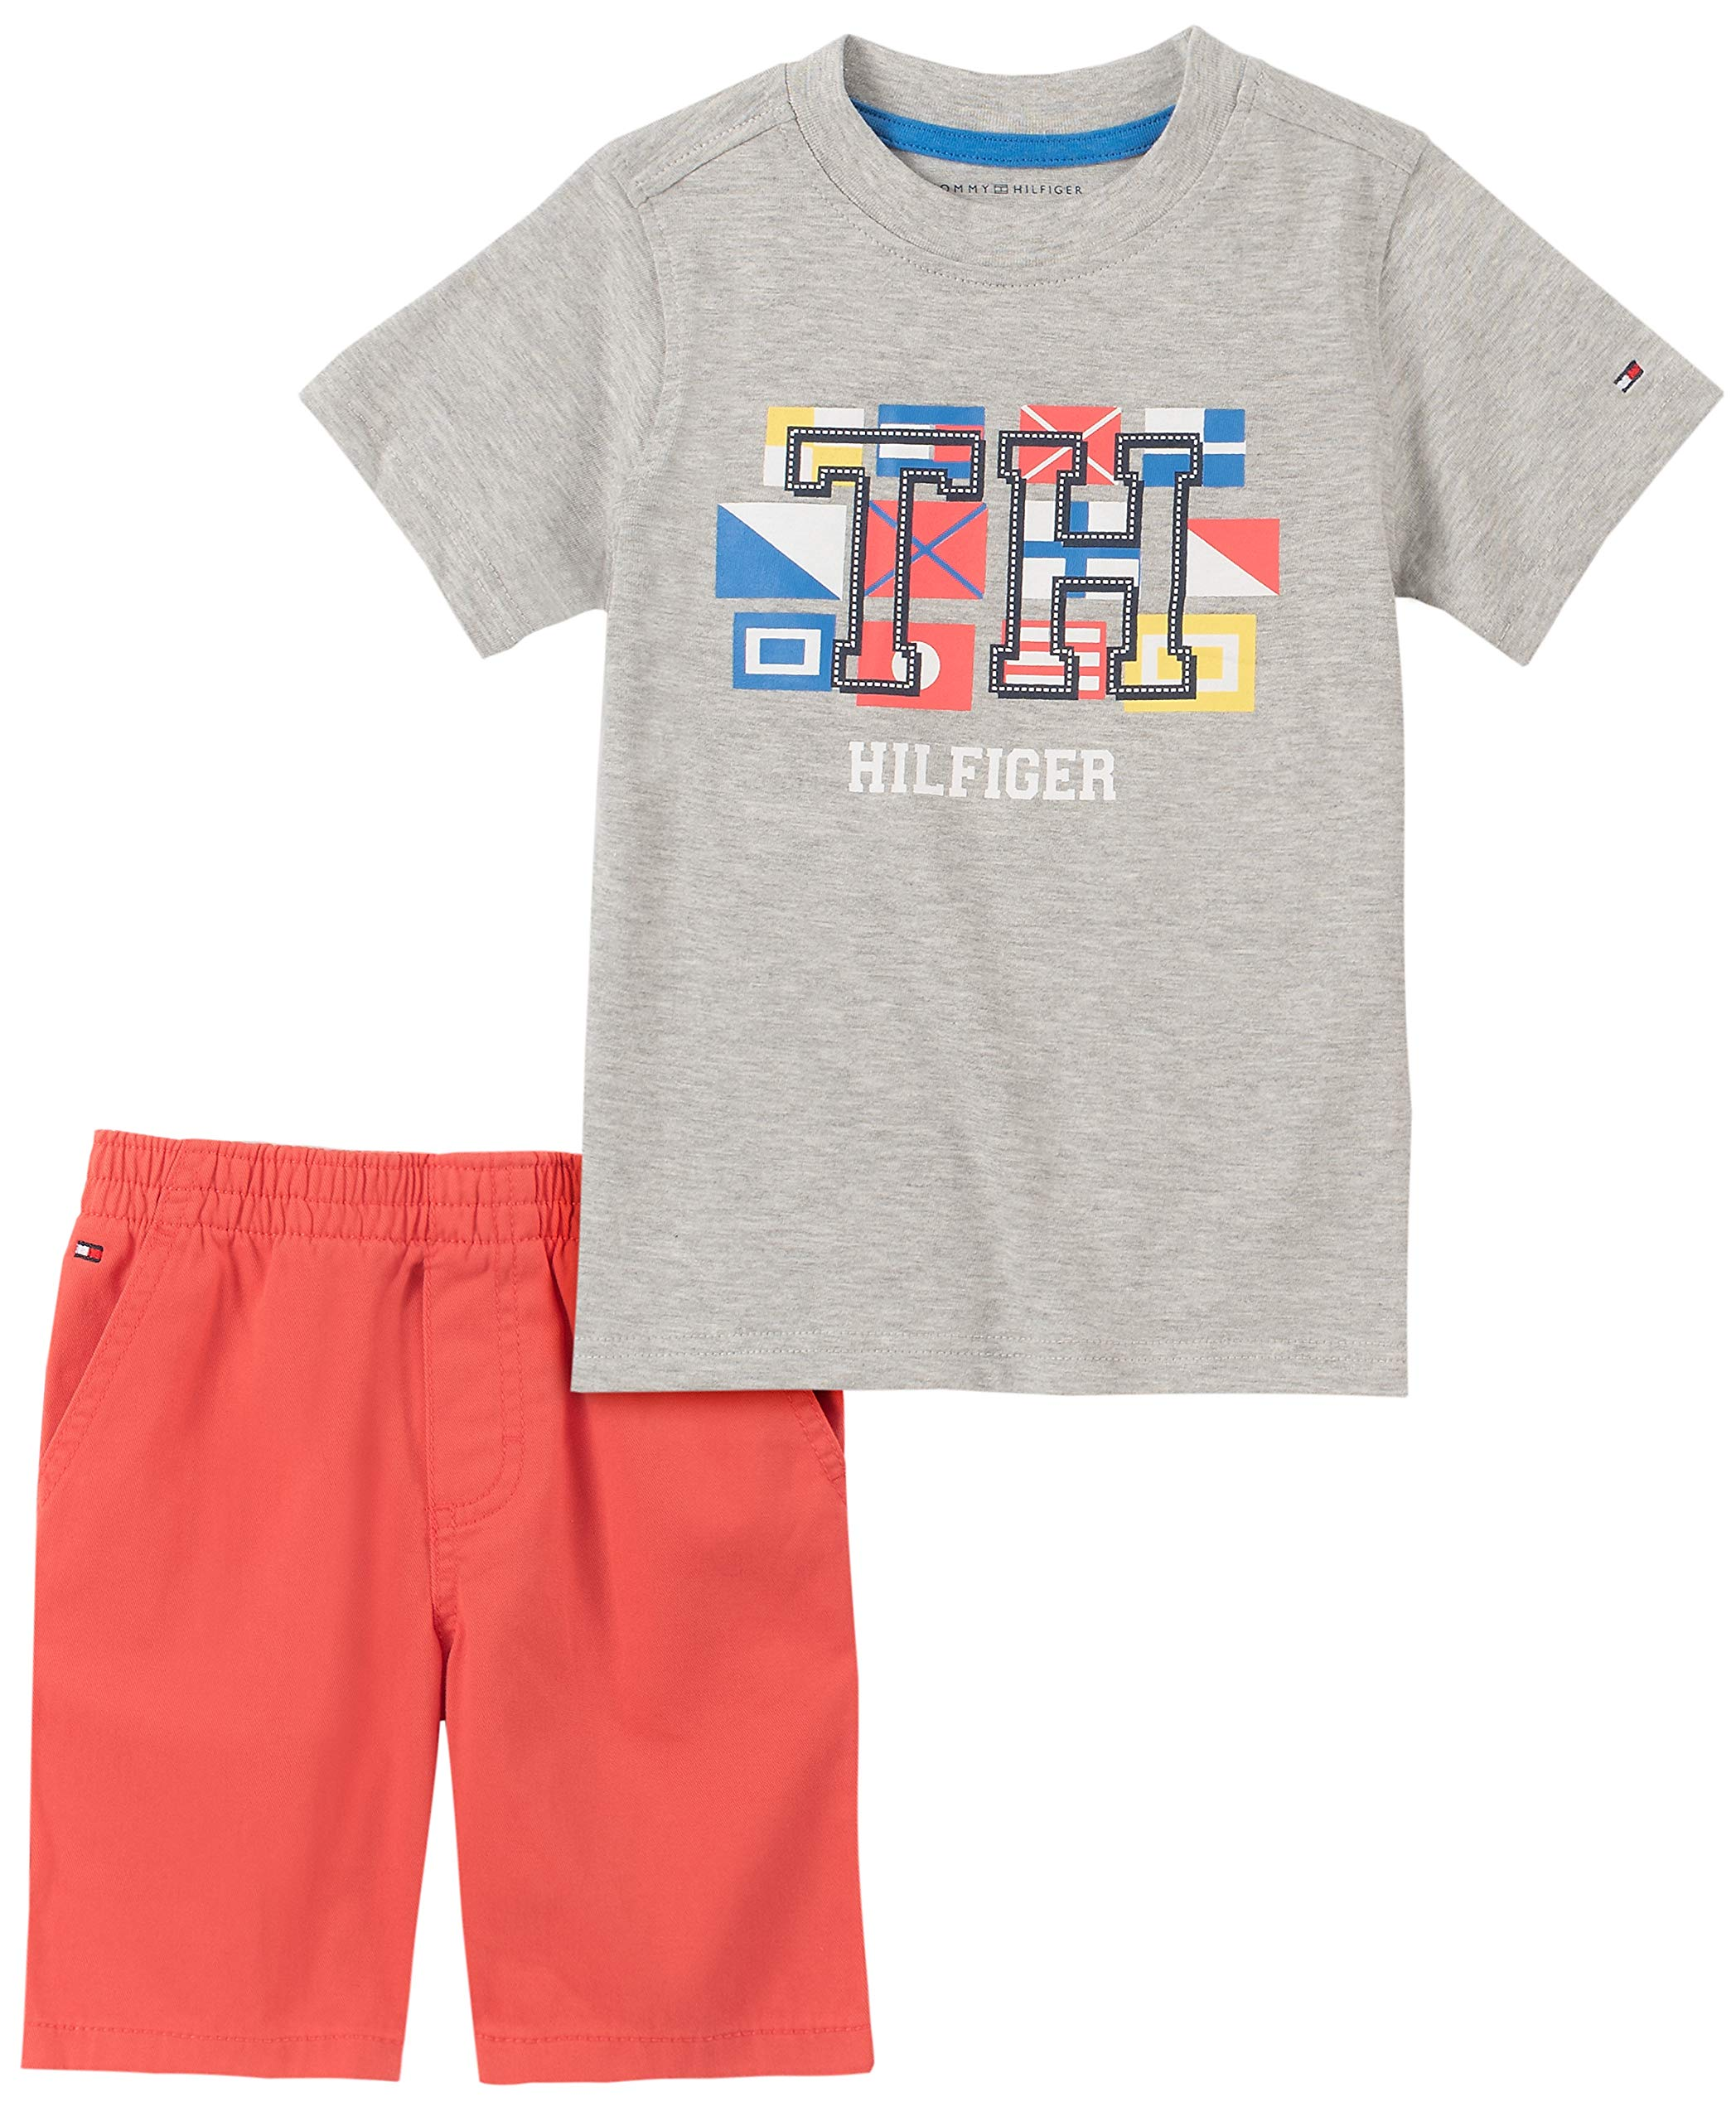 Tommy Hilfiger Boys' 2 Pieces Shorts Set